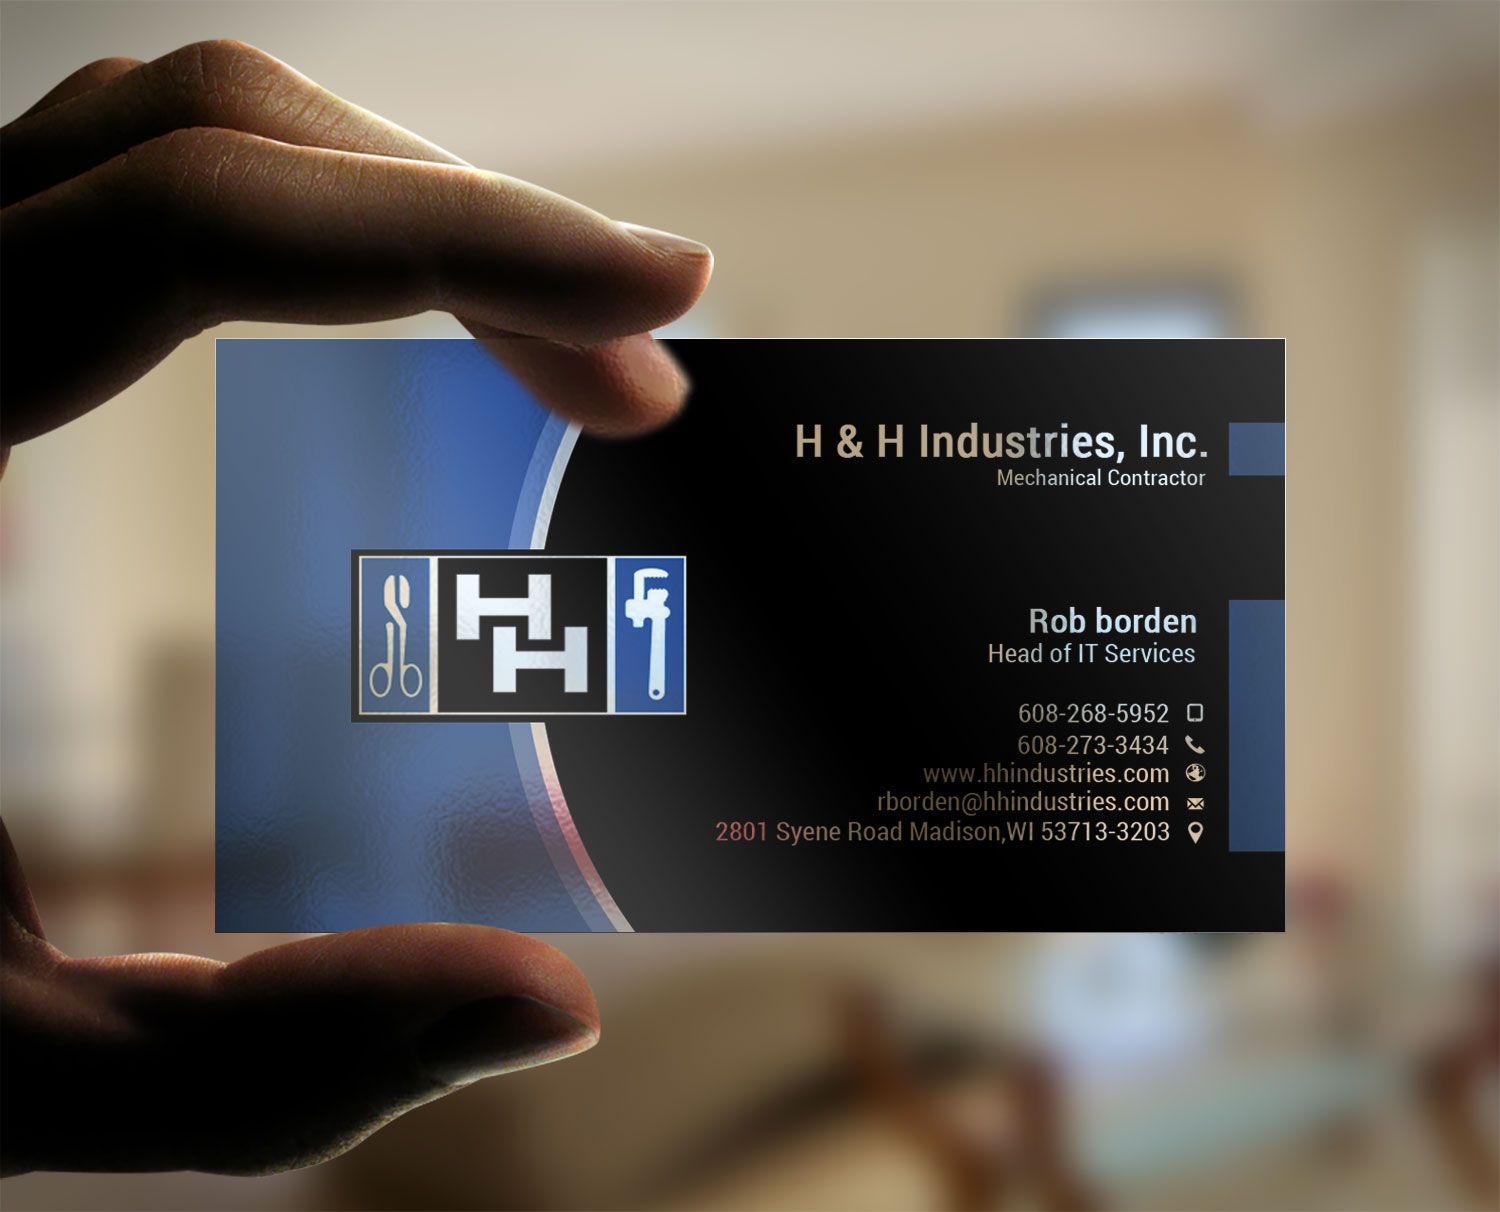 Bold serious business card design for rob borden by lanka ama business card design by lanka ama for h h industries hvac mechanical contractor business card magicingreecefo Image collections